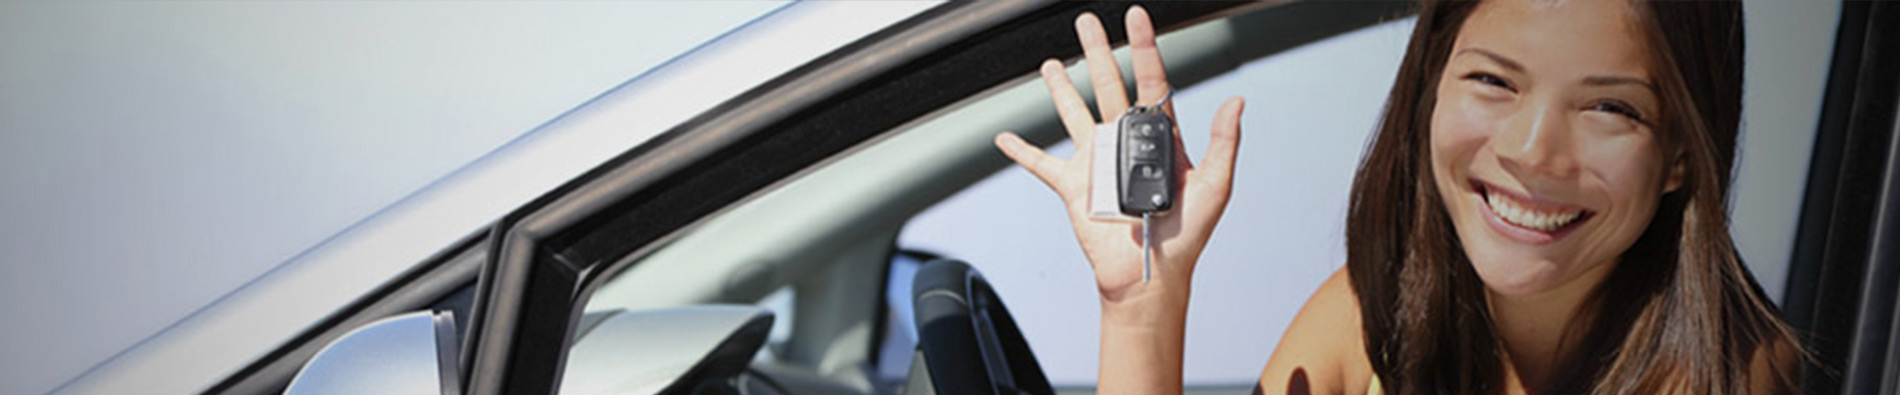 gps-vehicle-tracking-for-teen